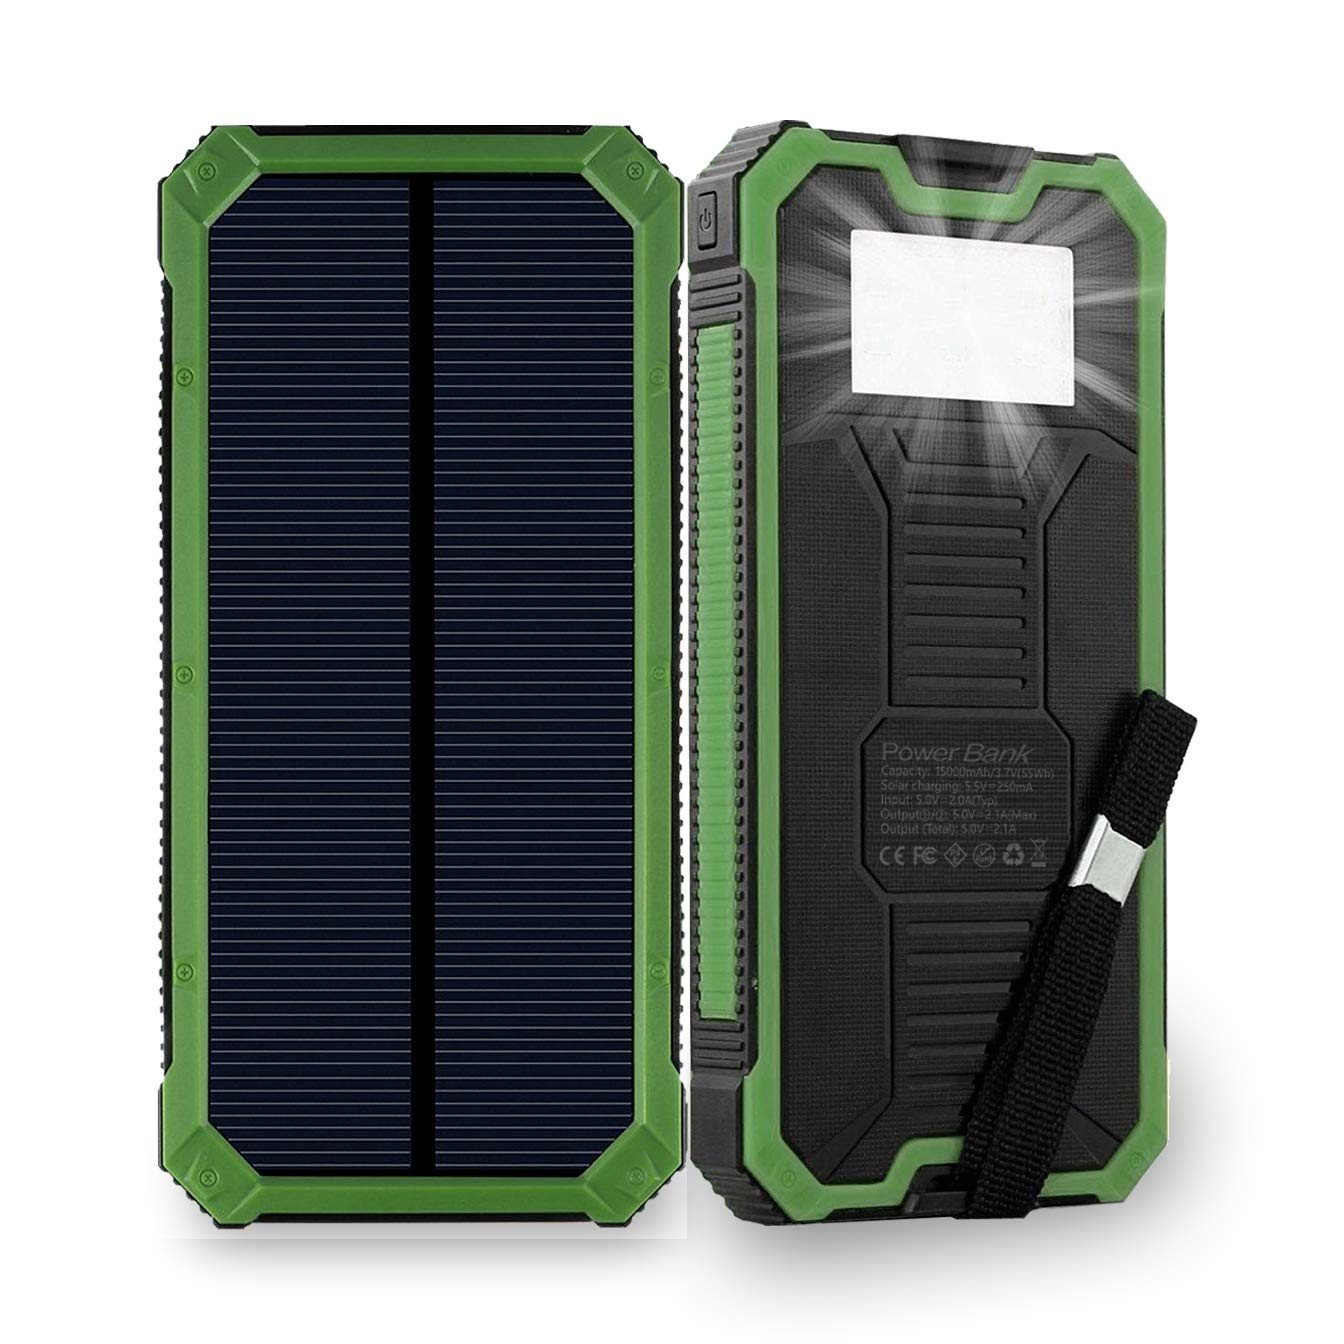 Solar Charger, Friengood 15000mAh Portable Solar Power Bank with Dual USB Ports, Solar External Battery Pack Phone Charger with 6 LED Flashlight Light for iPhone, iPad, Samsung and More (Green)